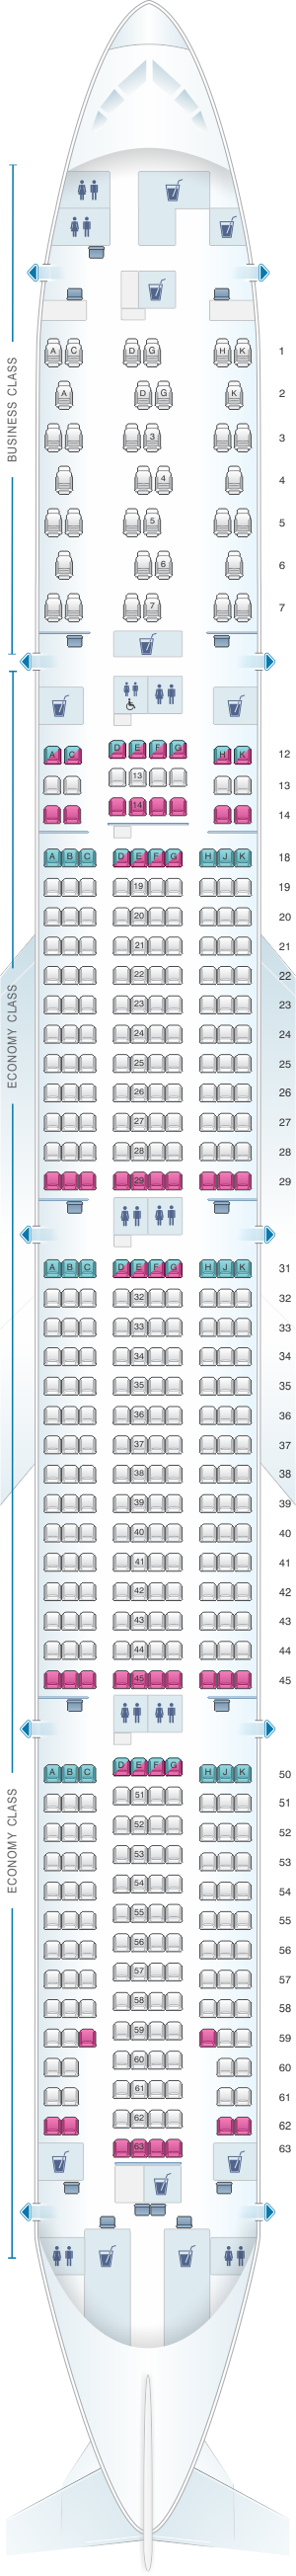 Seat map air canada boeing b777 300er 77w north america layout 2